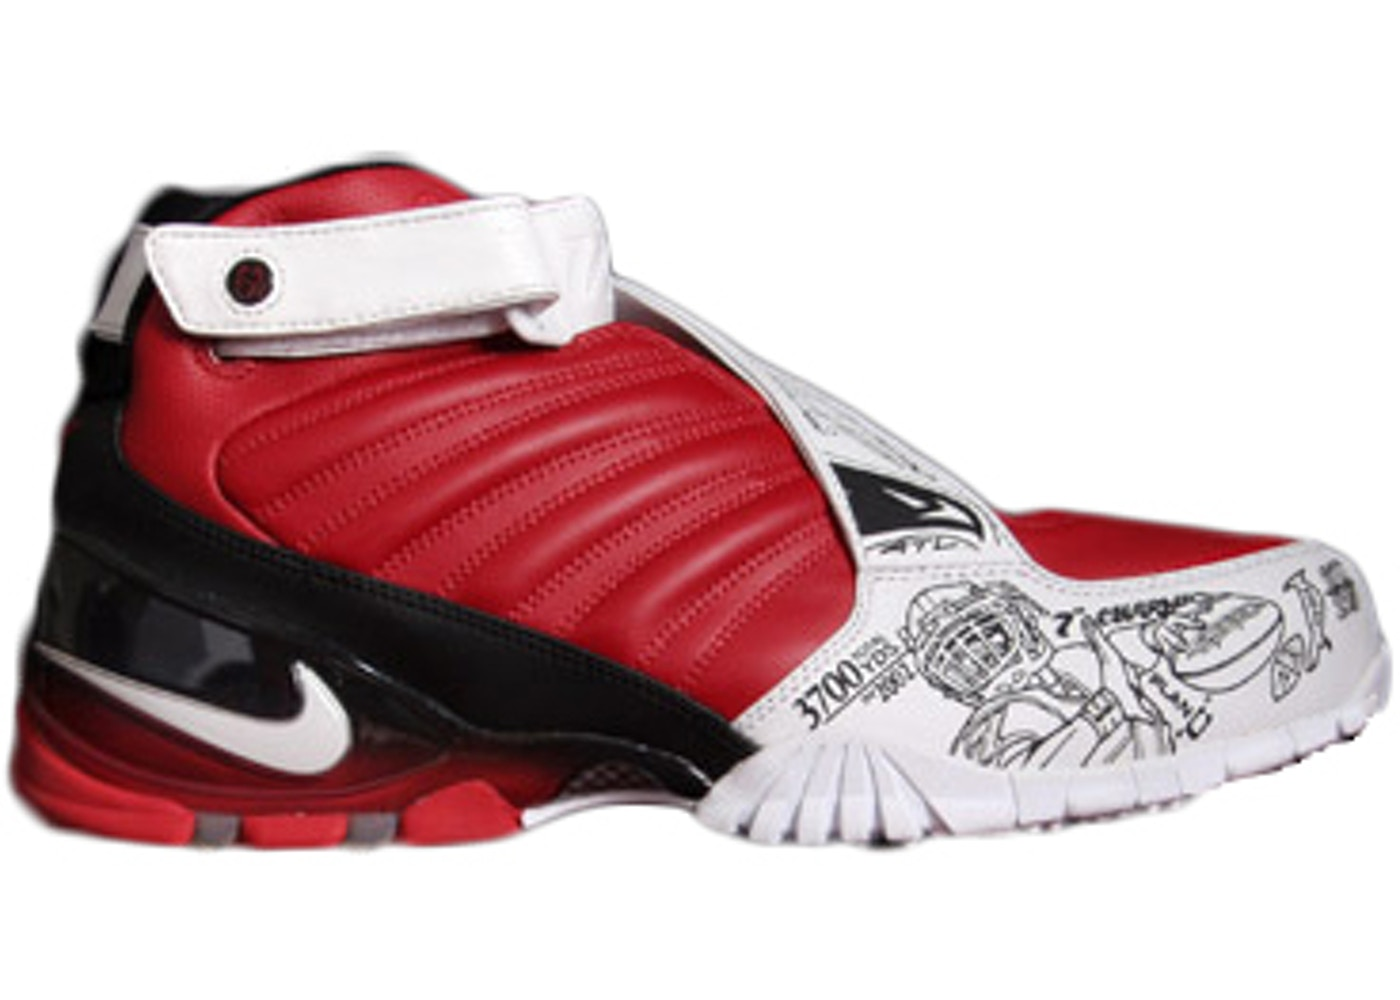 4eeb49ece07 Air Zoom Vick 3 Laser the Dirty - 313076-611